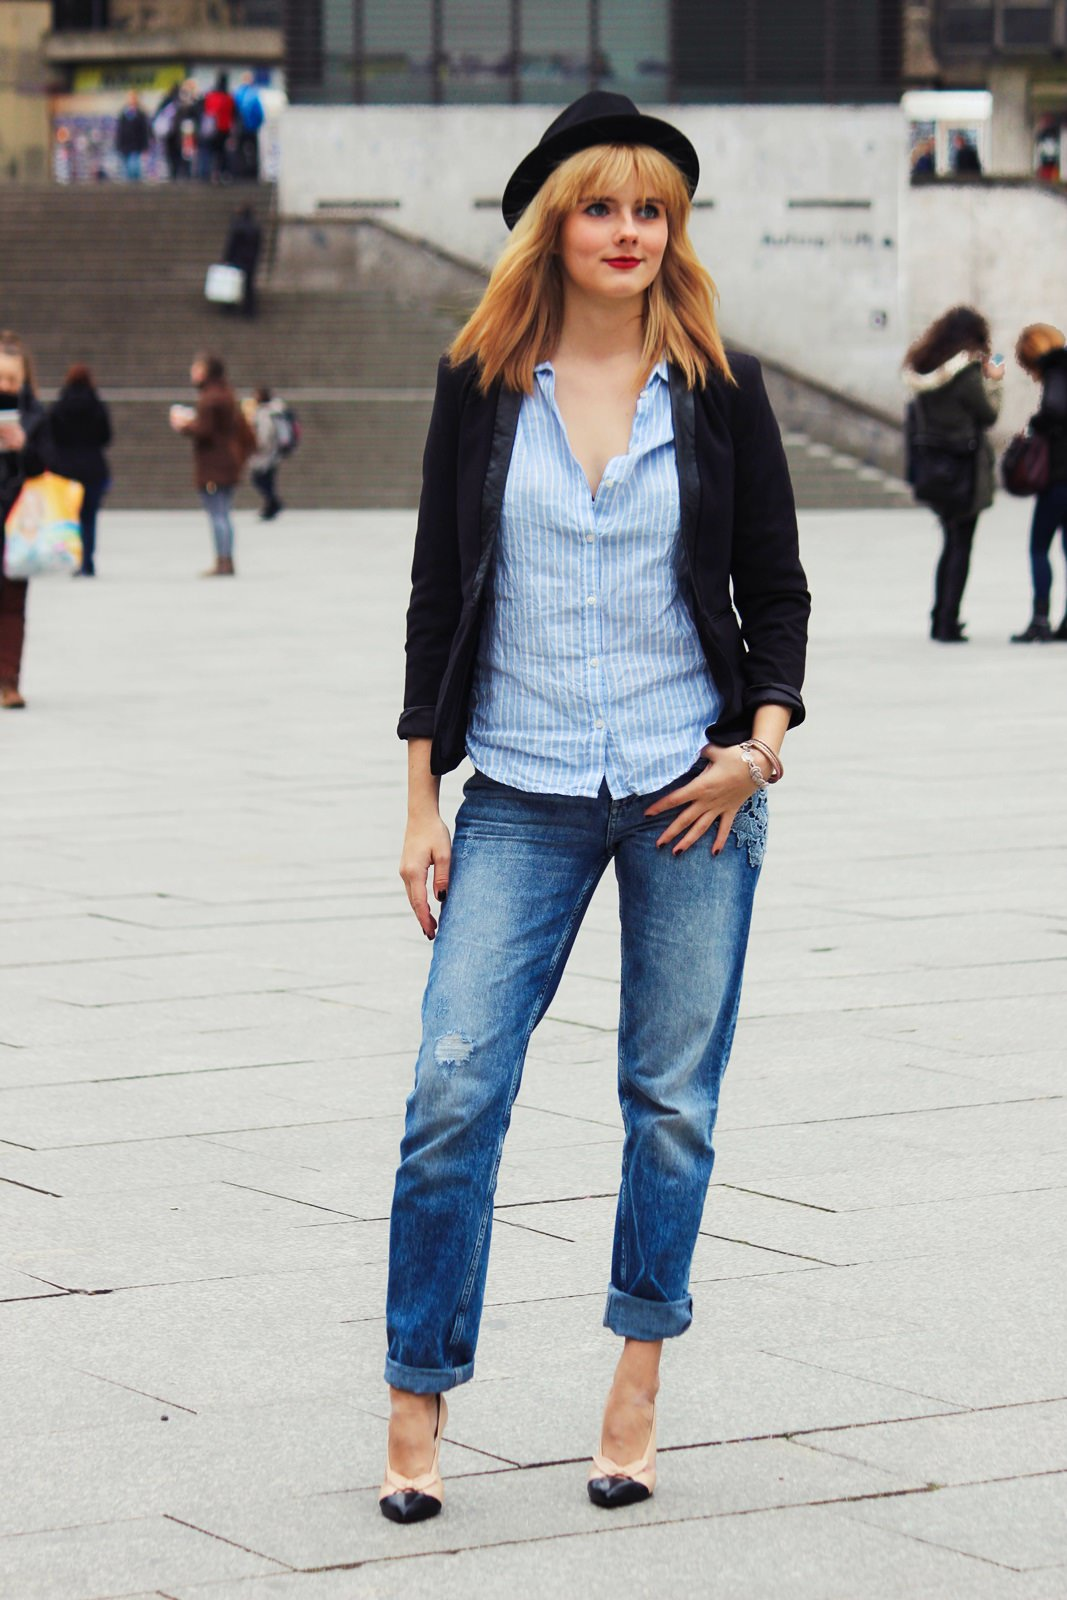 Des Belles Choses Outfit - 10 things why it's great to be a woman Boyfriend Style with pumps 1